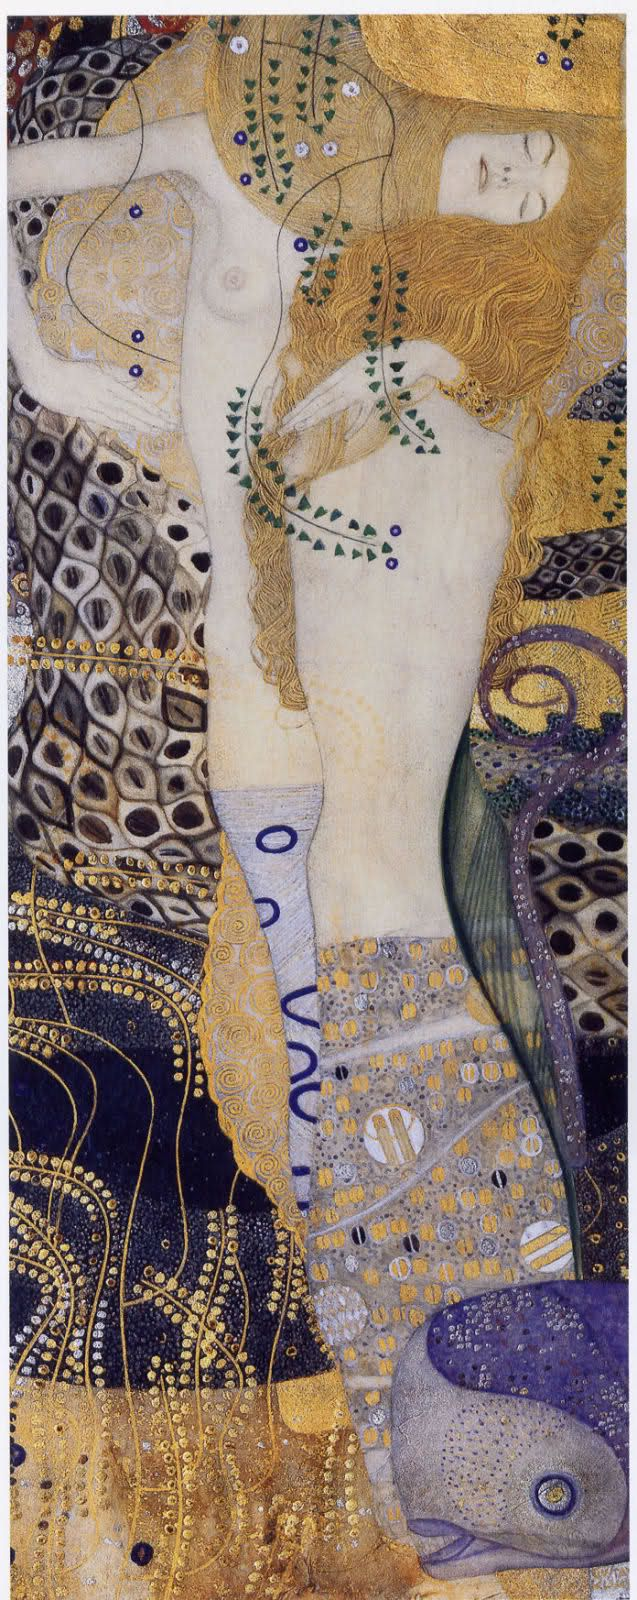 Gustav Klimt Sea Serpents I 1904 - 1907 Oil on canvas 20 cm x 50 cm  Österreichische Gal. Belvedere, Wien